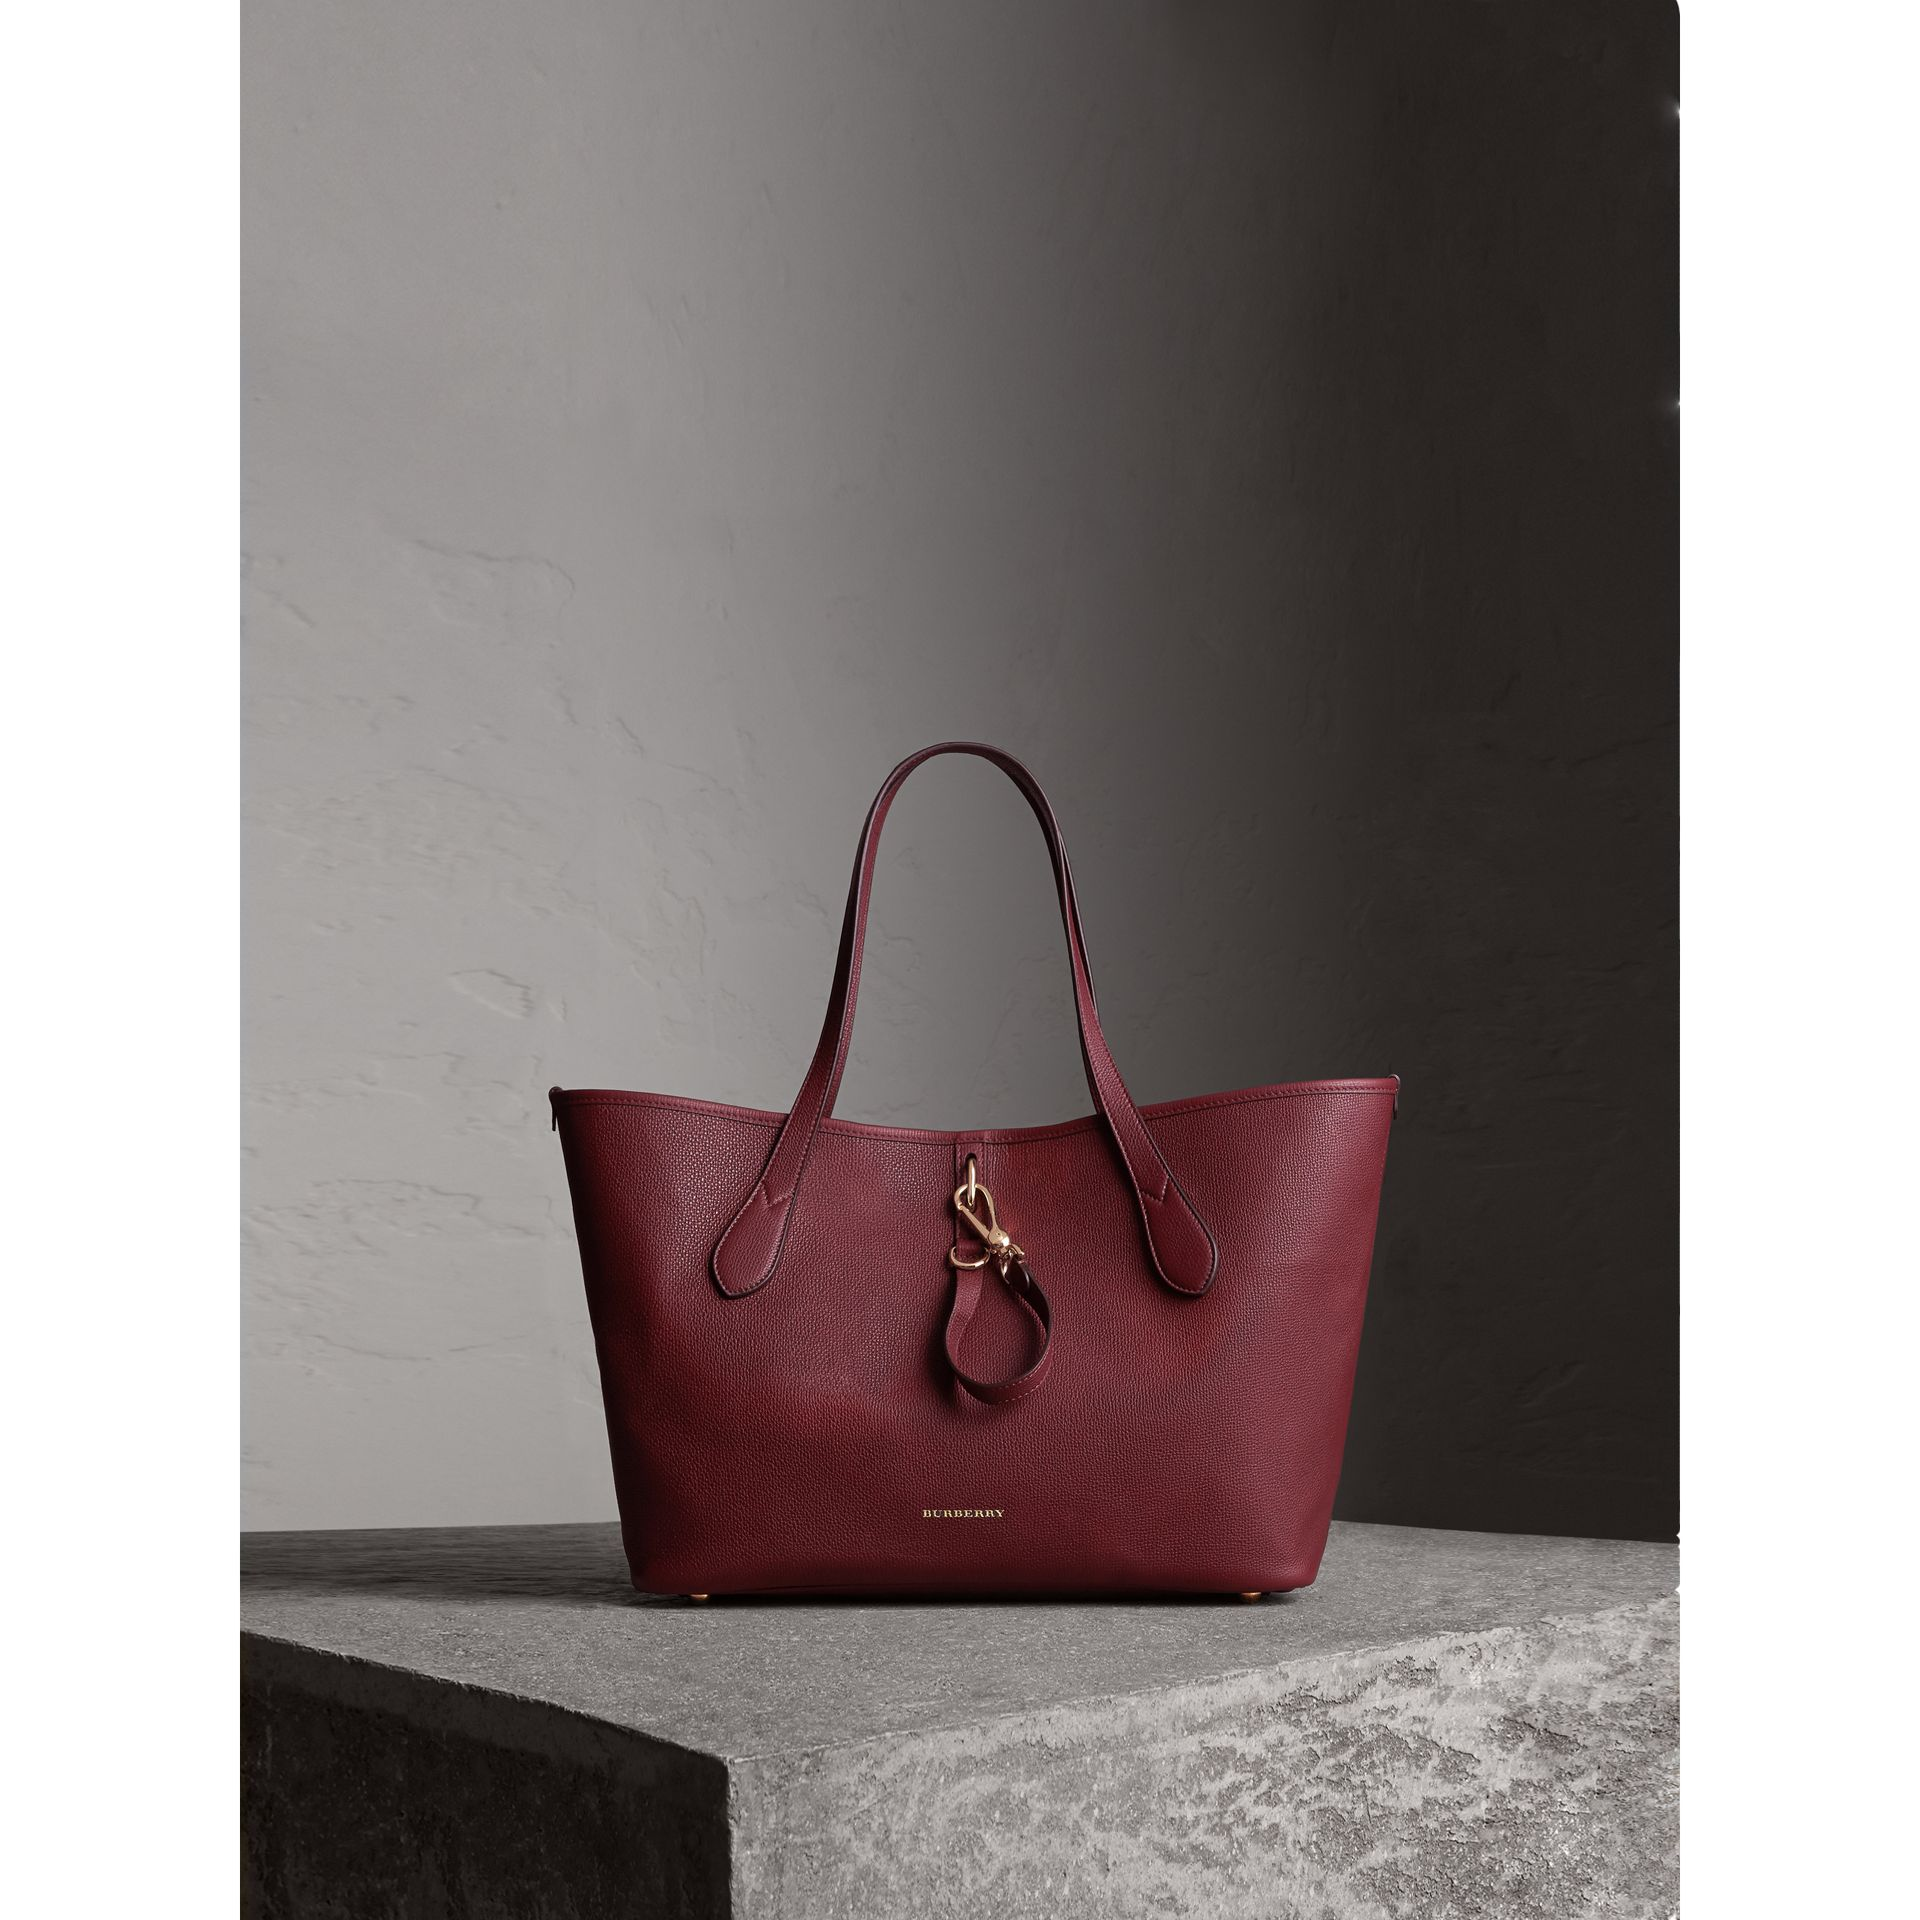 Medium Grainy Leather Tote Bag in Mahogany Red - Women | Burberry - gallery image 1